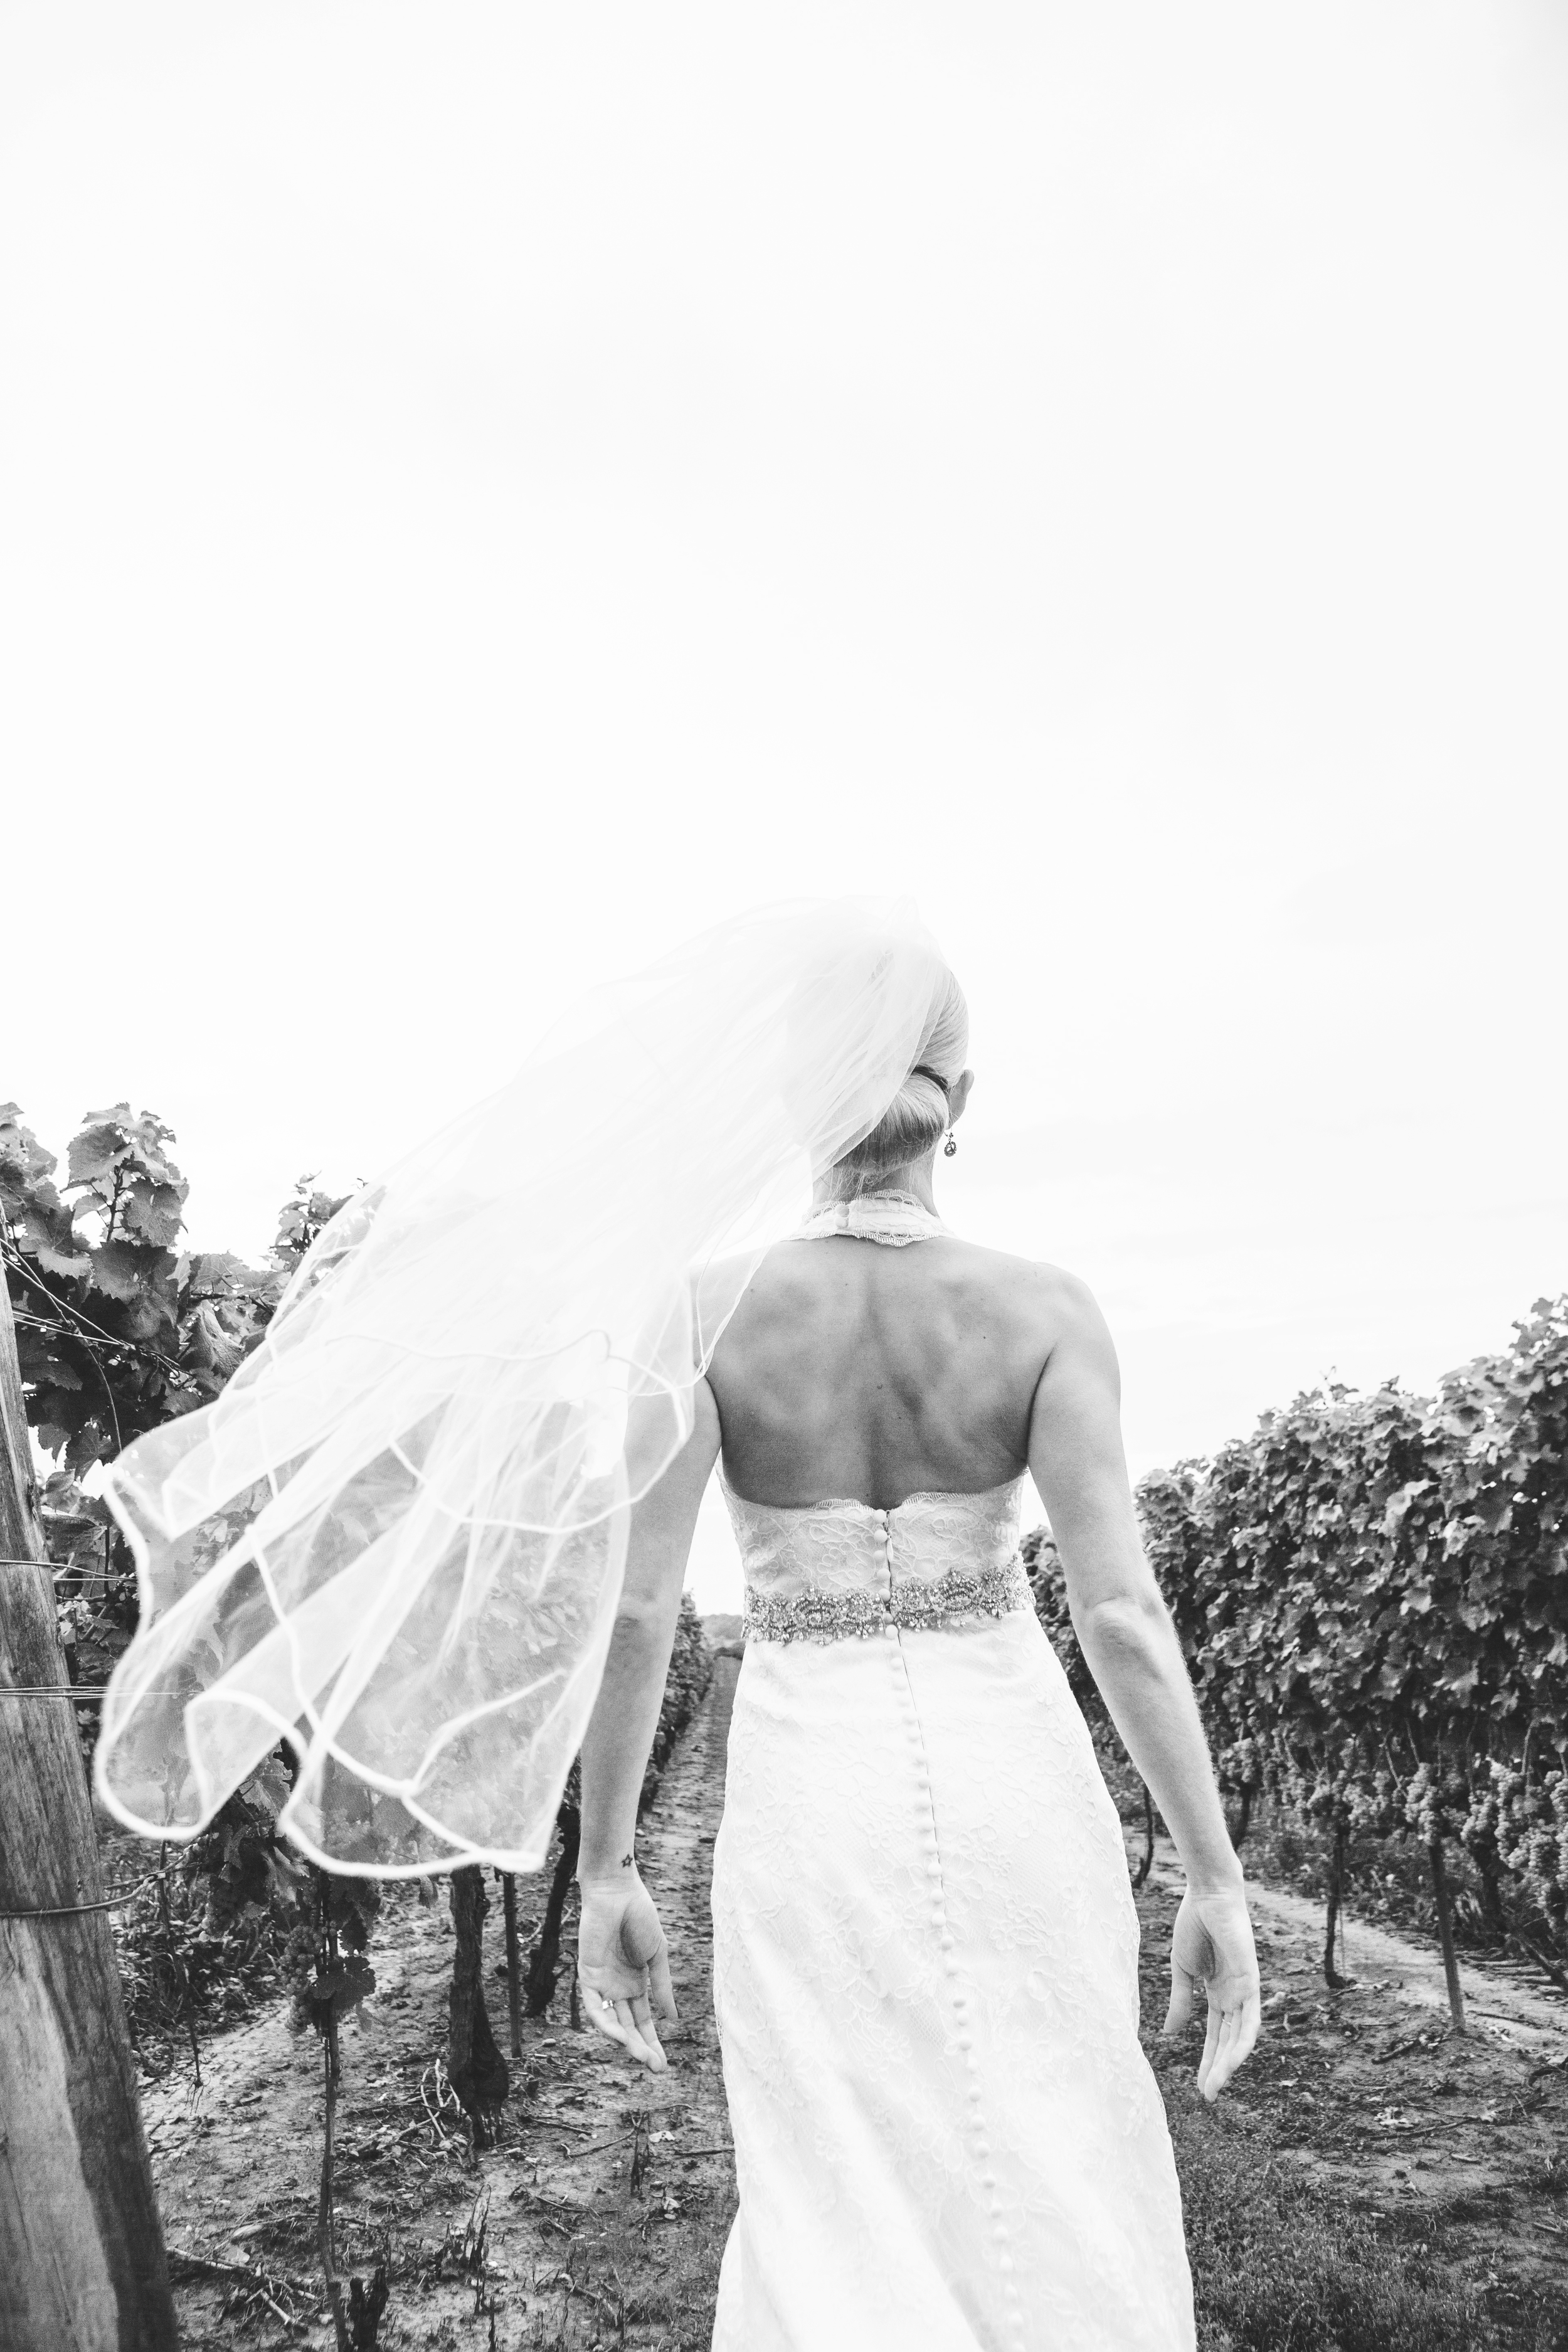 dintino-portraits-winery-77-2-bw.jpg